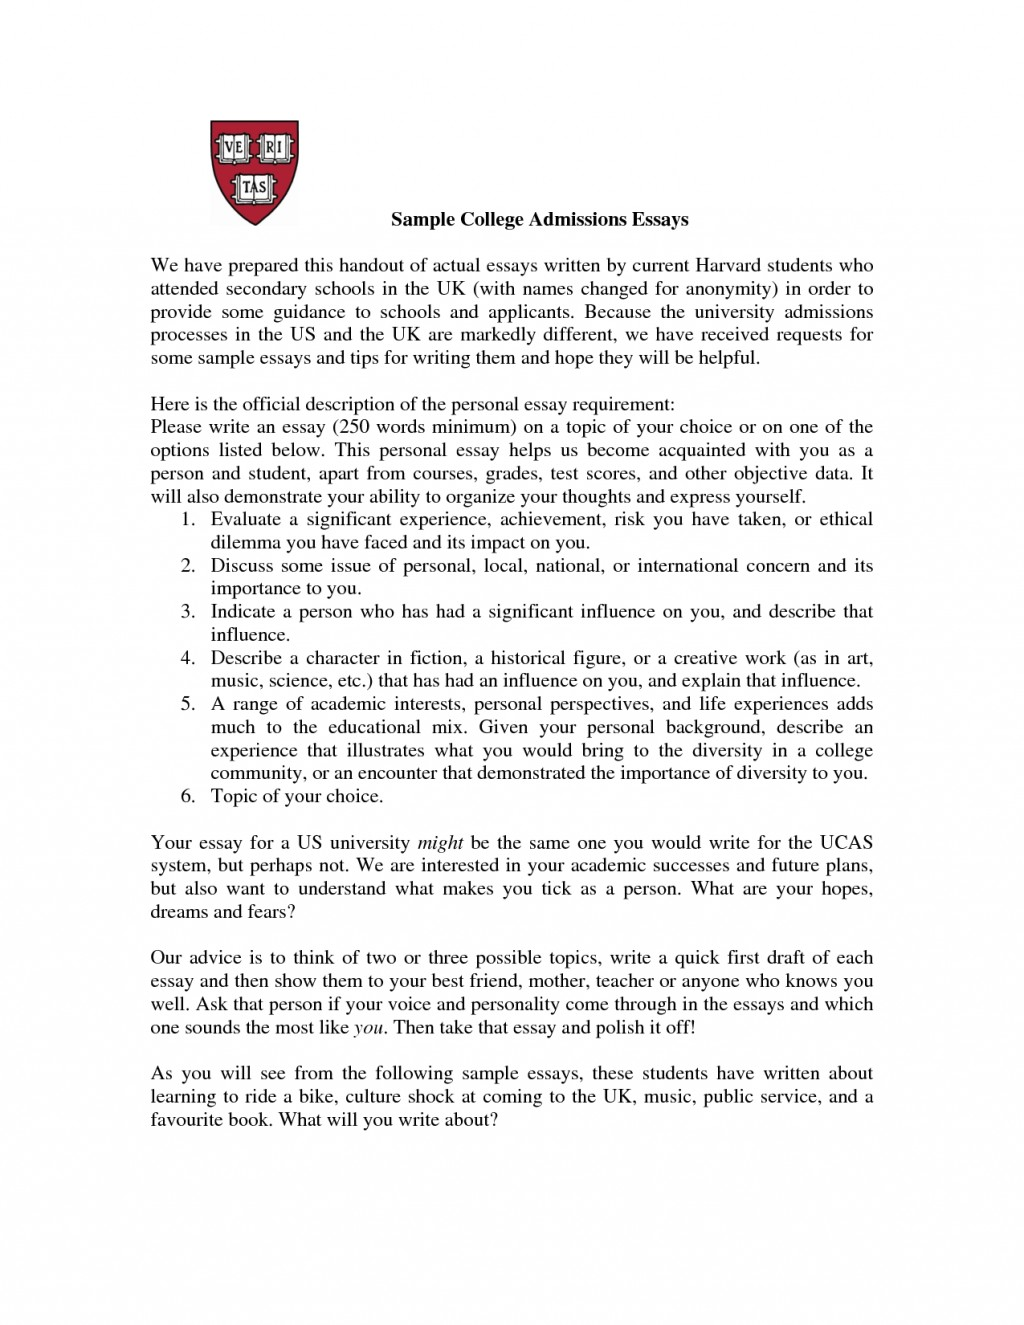 025 Essay Example College Heading What To Write Application About Incredible Admissions Format Papers Large